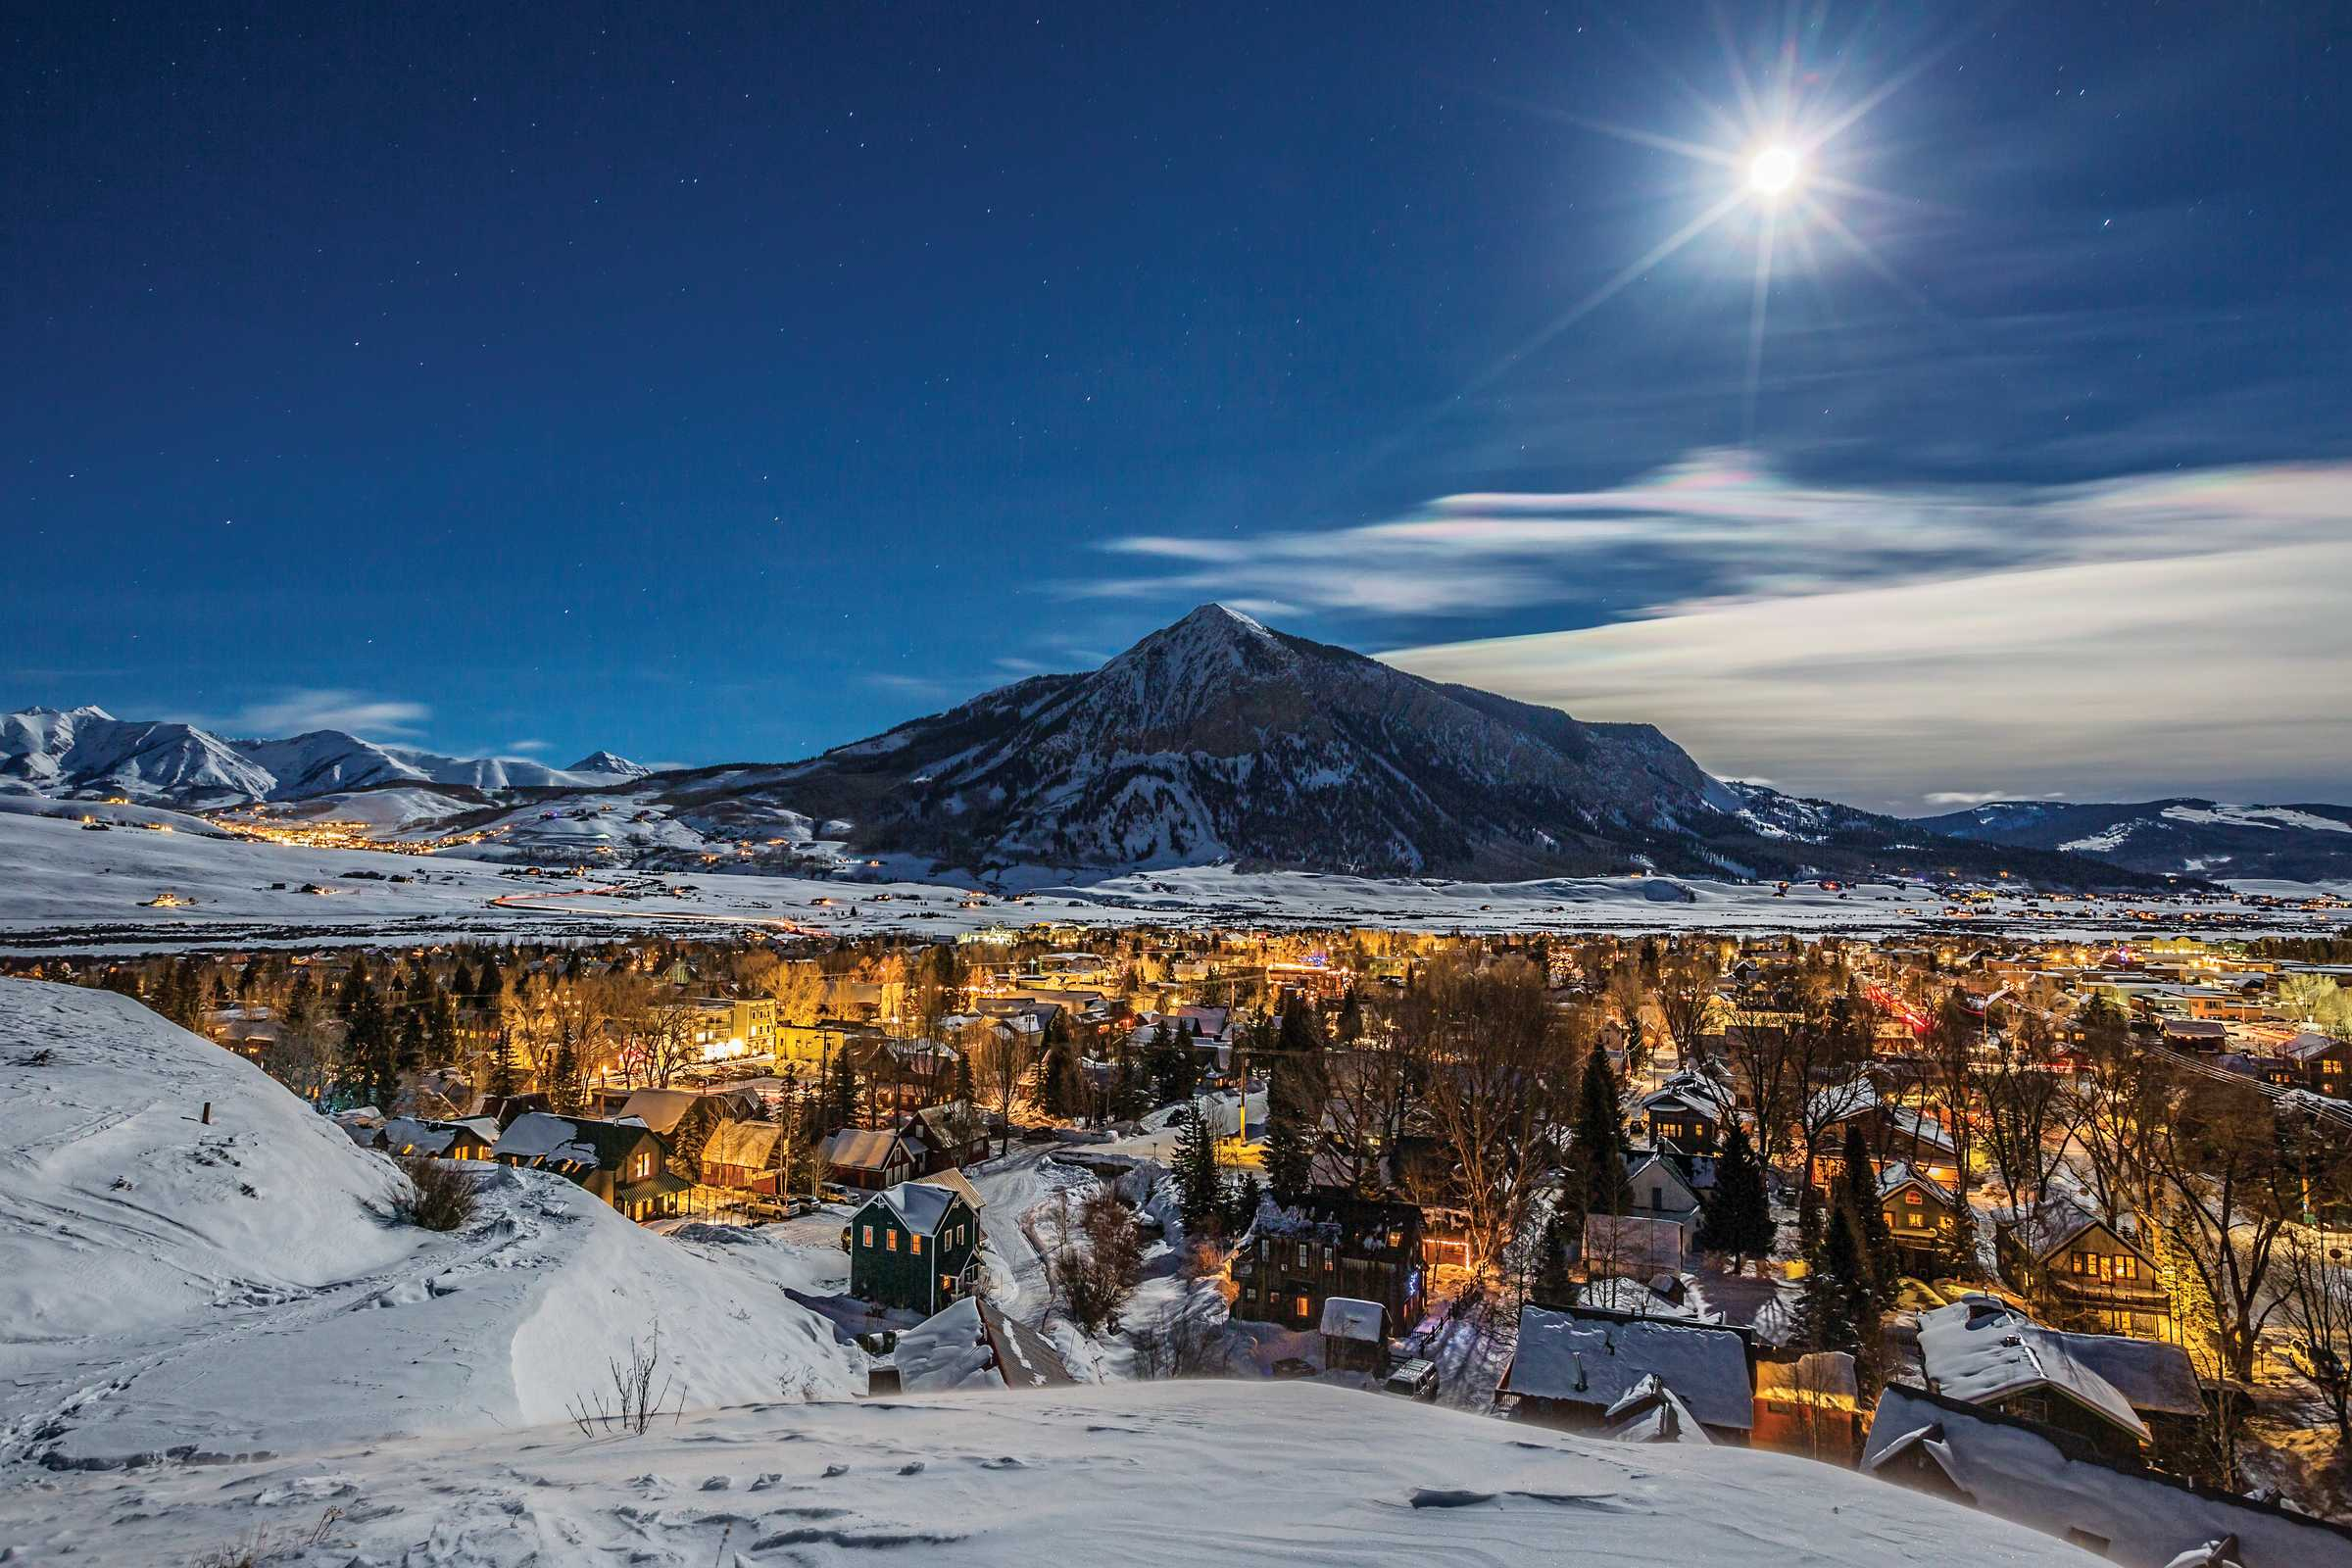 crested butte skiing snowboarding resort guide evo